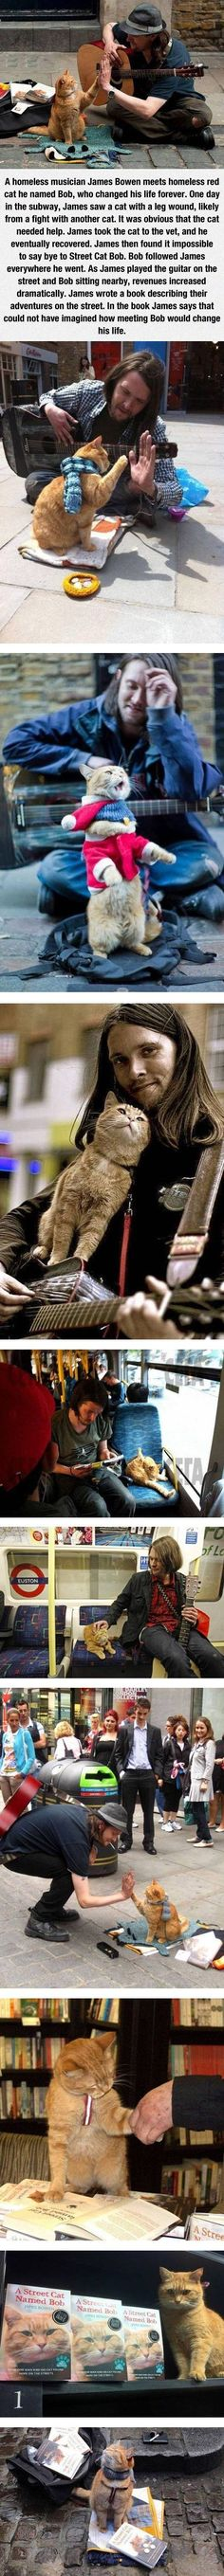 A Homeless Musician And A Stray Cat Who Changed His Life.